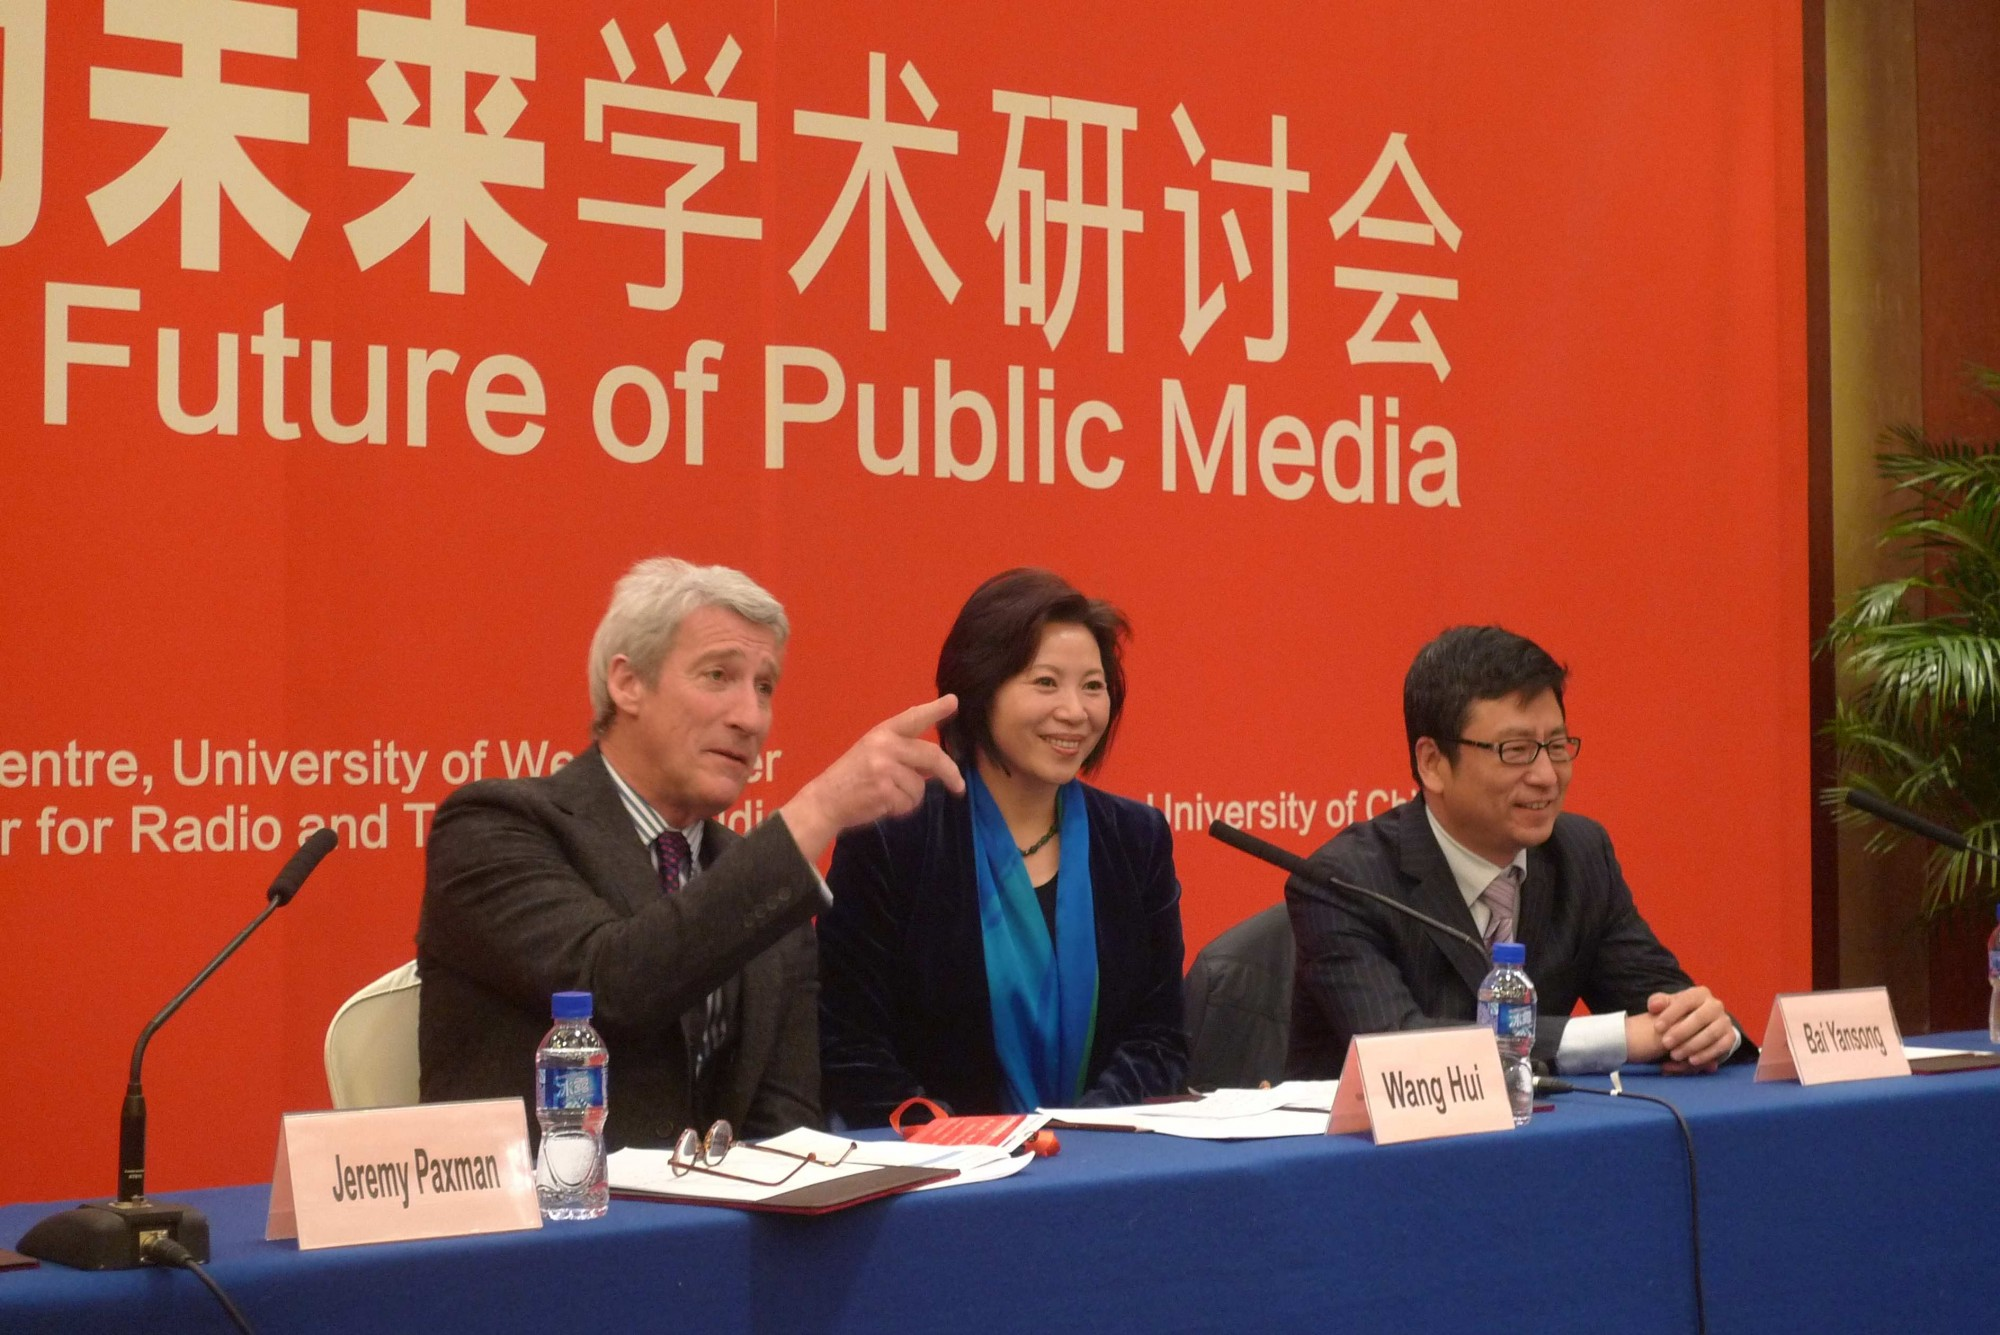 Jeremy Paxman and Bai Yansong spoke at the Future of Public Media workshop in Beijing